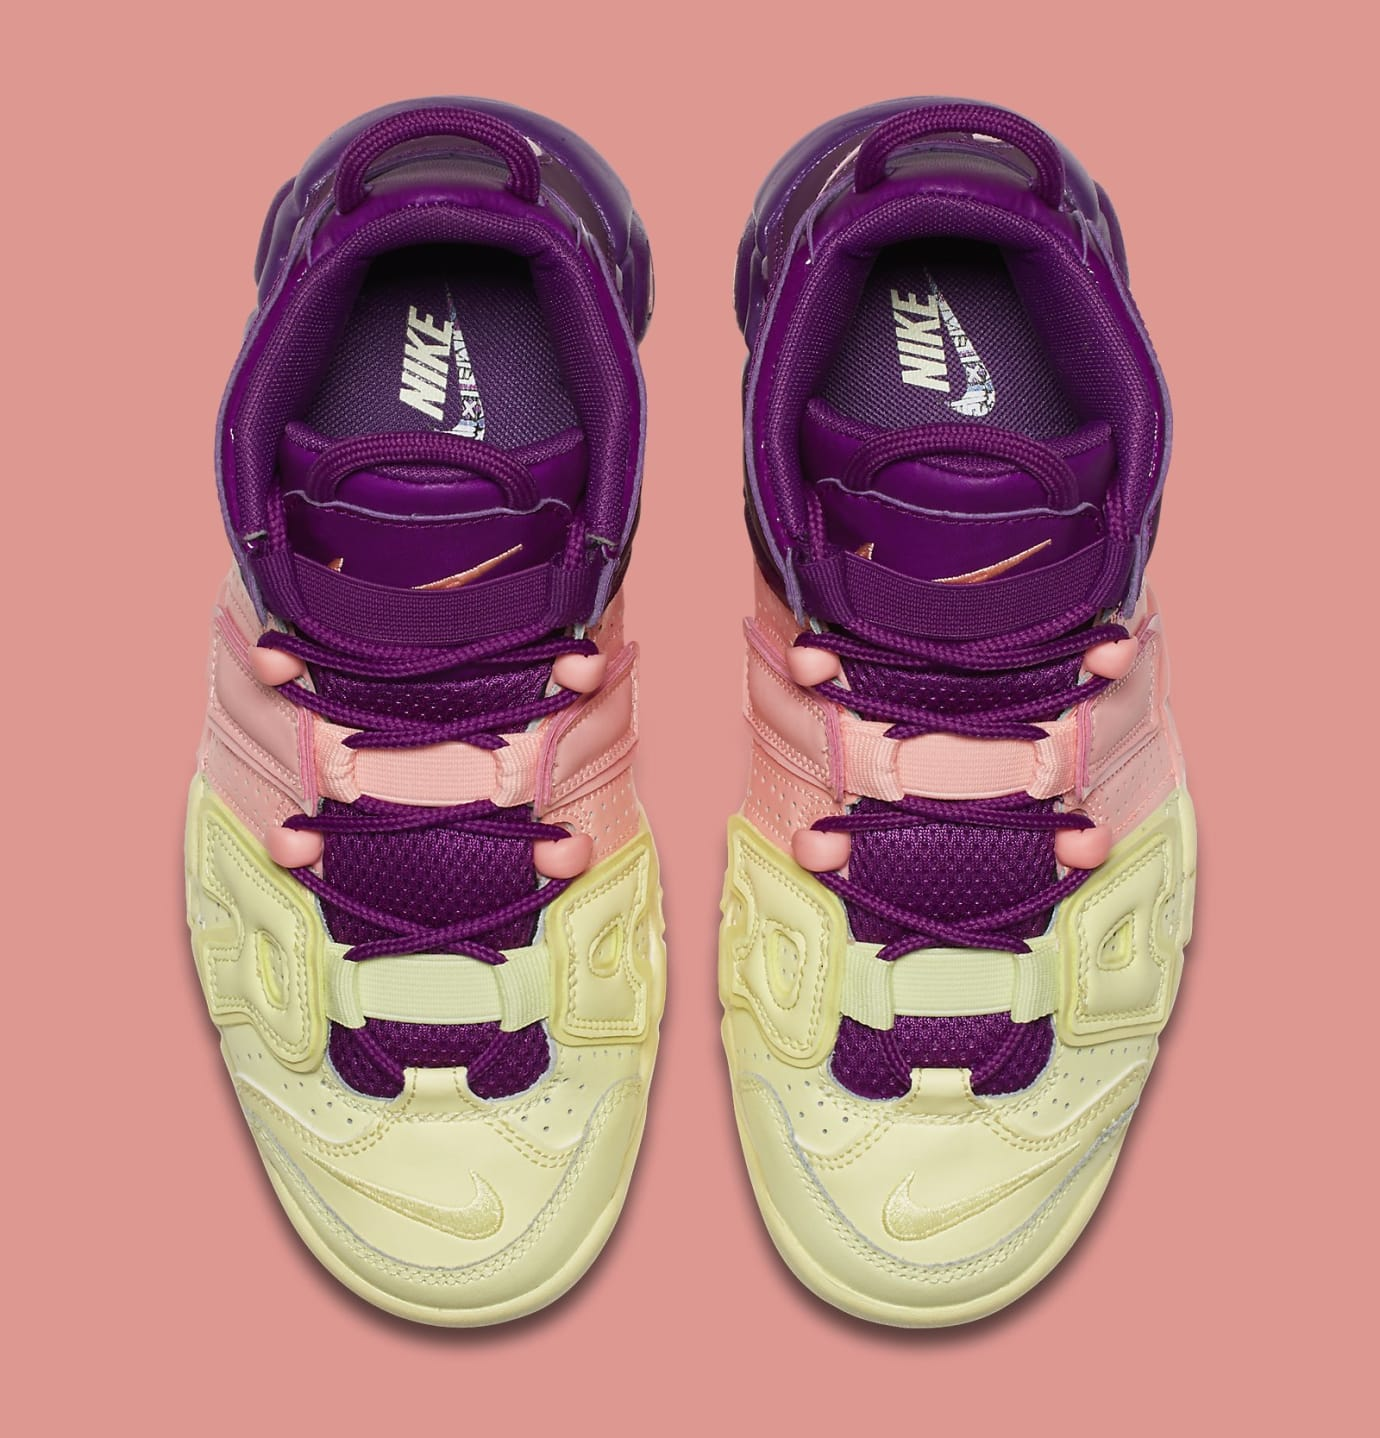 Nike Air More Uptempo GS Release Date Aug. 2018 AV8237-800  359a410eb